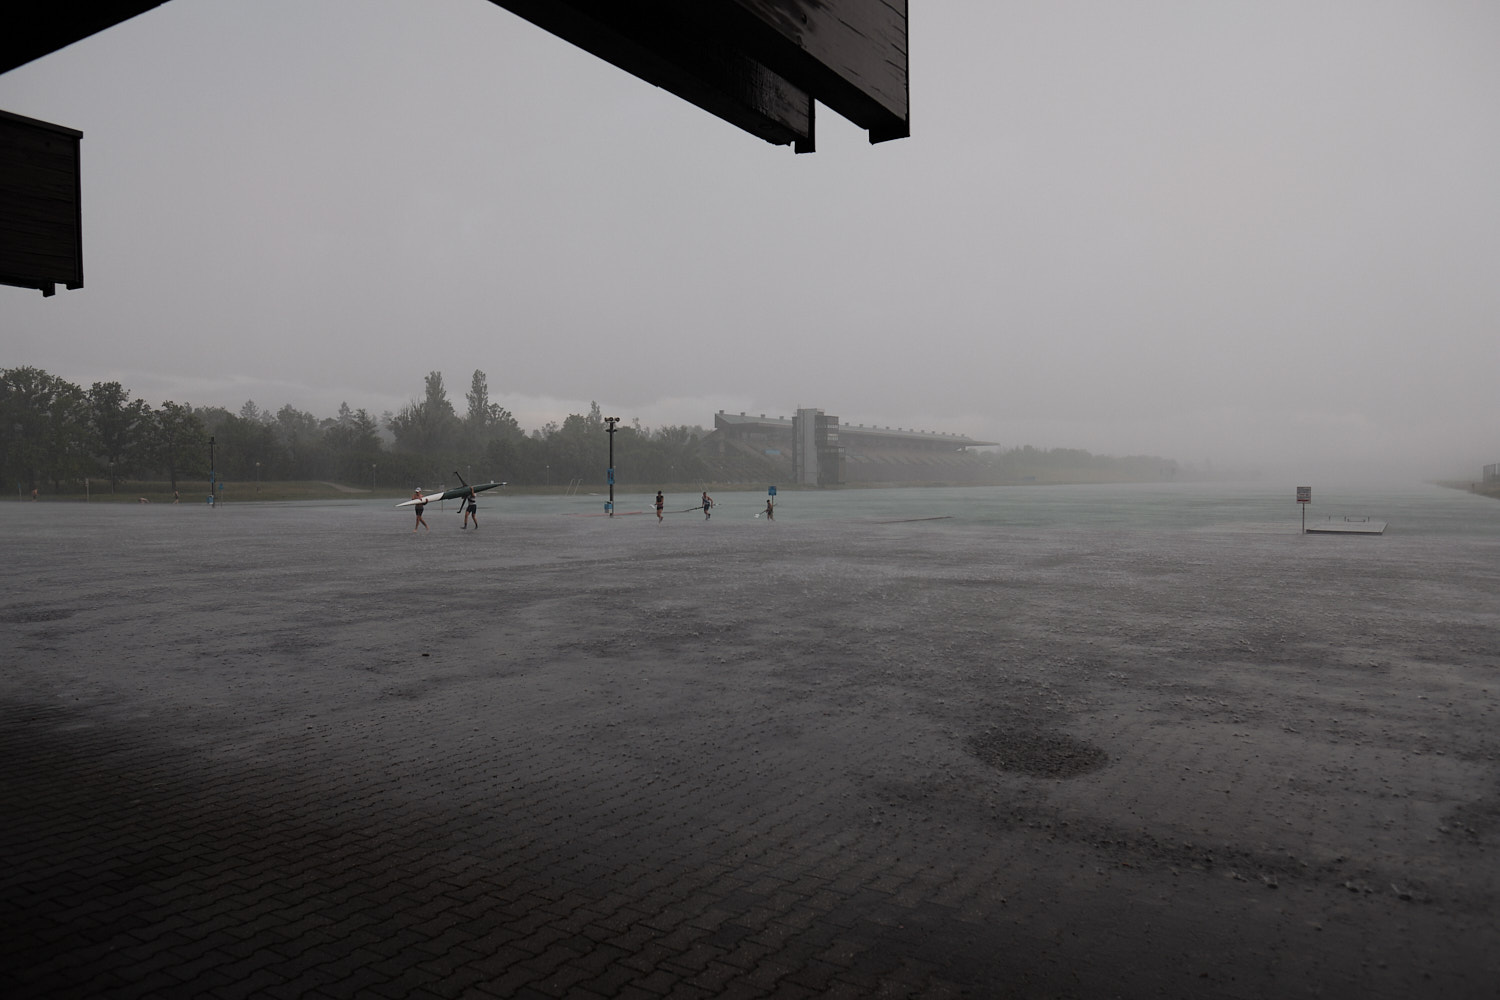 1972 Olympic Games Regatta course Oberschleißheim near Munich. Start side and canoe storages under strong stormy rain.